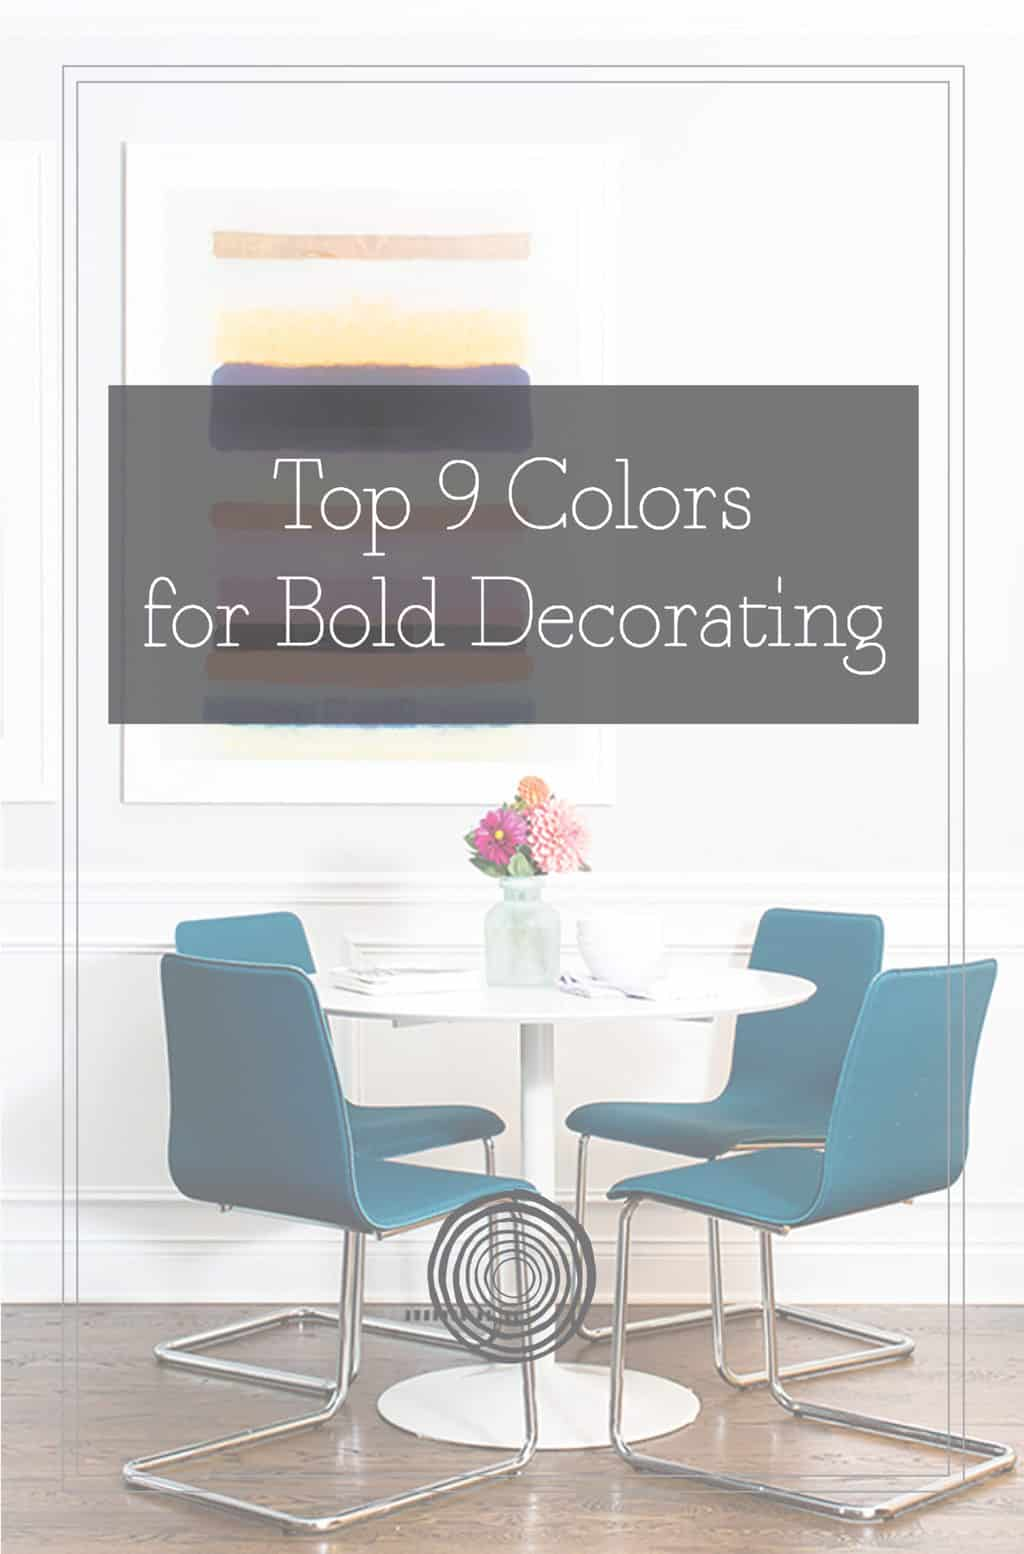 Top 9 Colors for Bold Decorating PDF